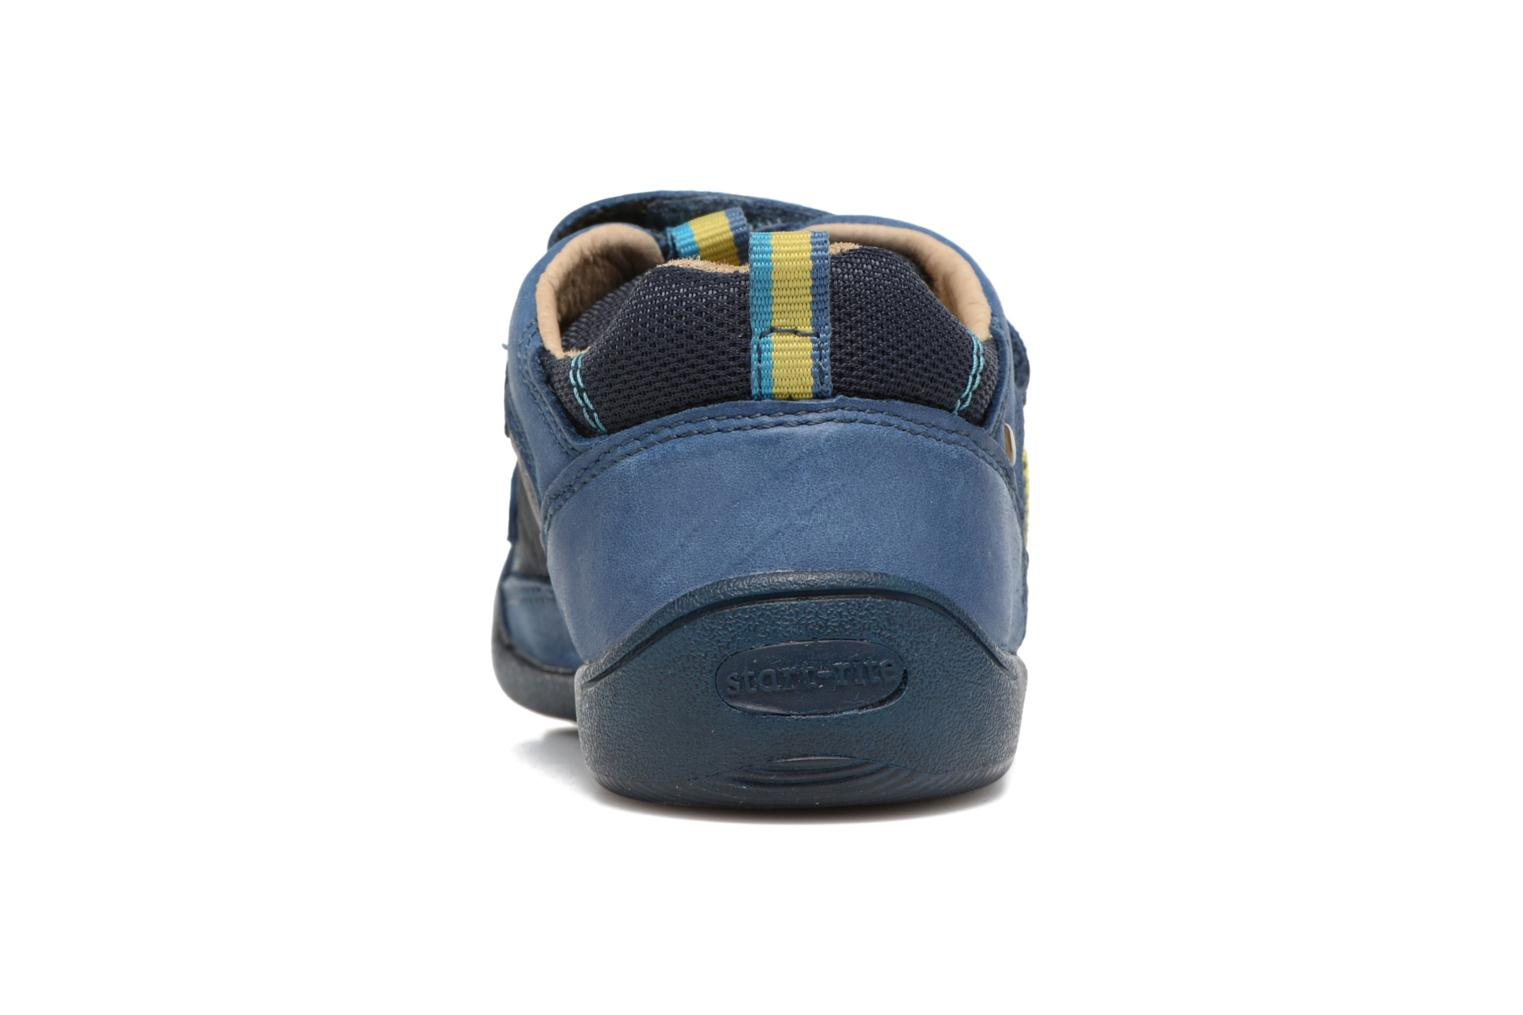 Leo Navy/Teal Leather